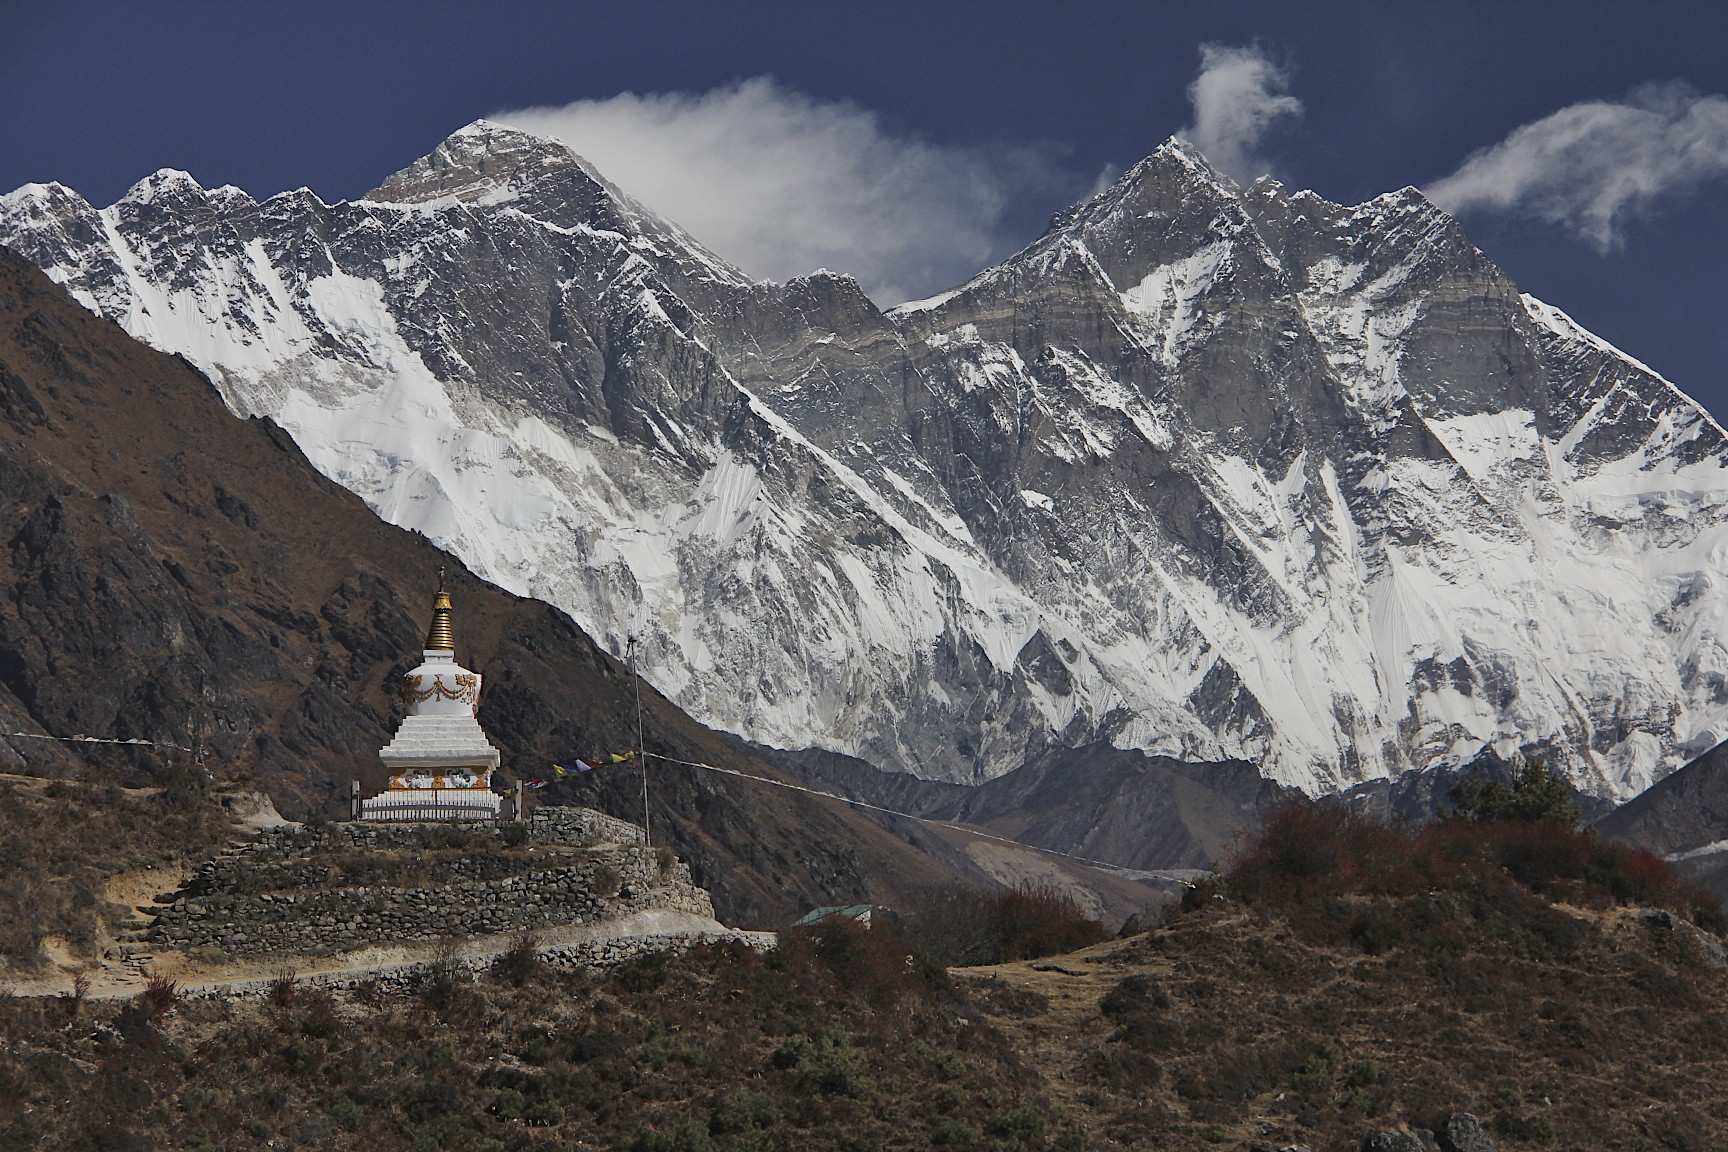 Nuptse, Mount Everest (behind the ridge) and Lhotse (on the right). Notice the strong wind blowing across Mt,. Everest's summit.